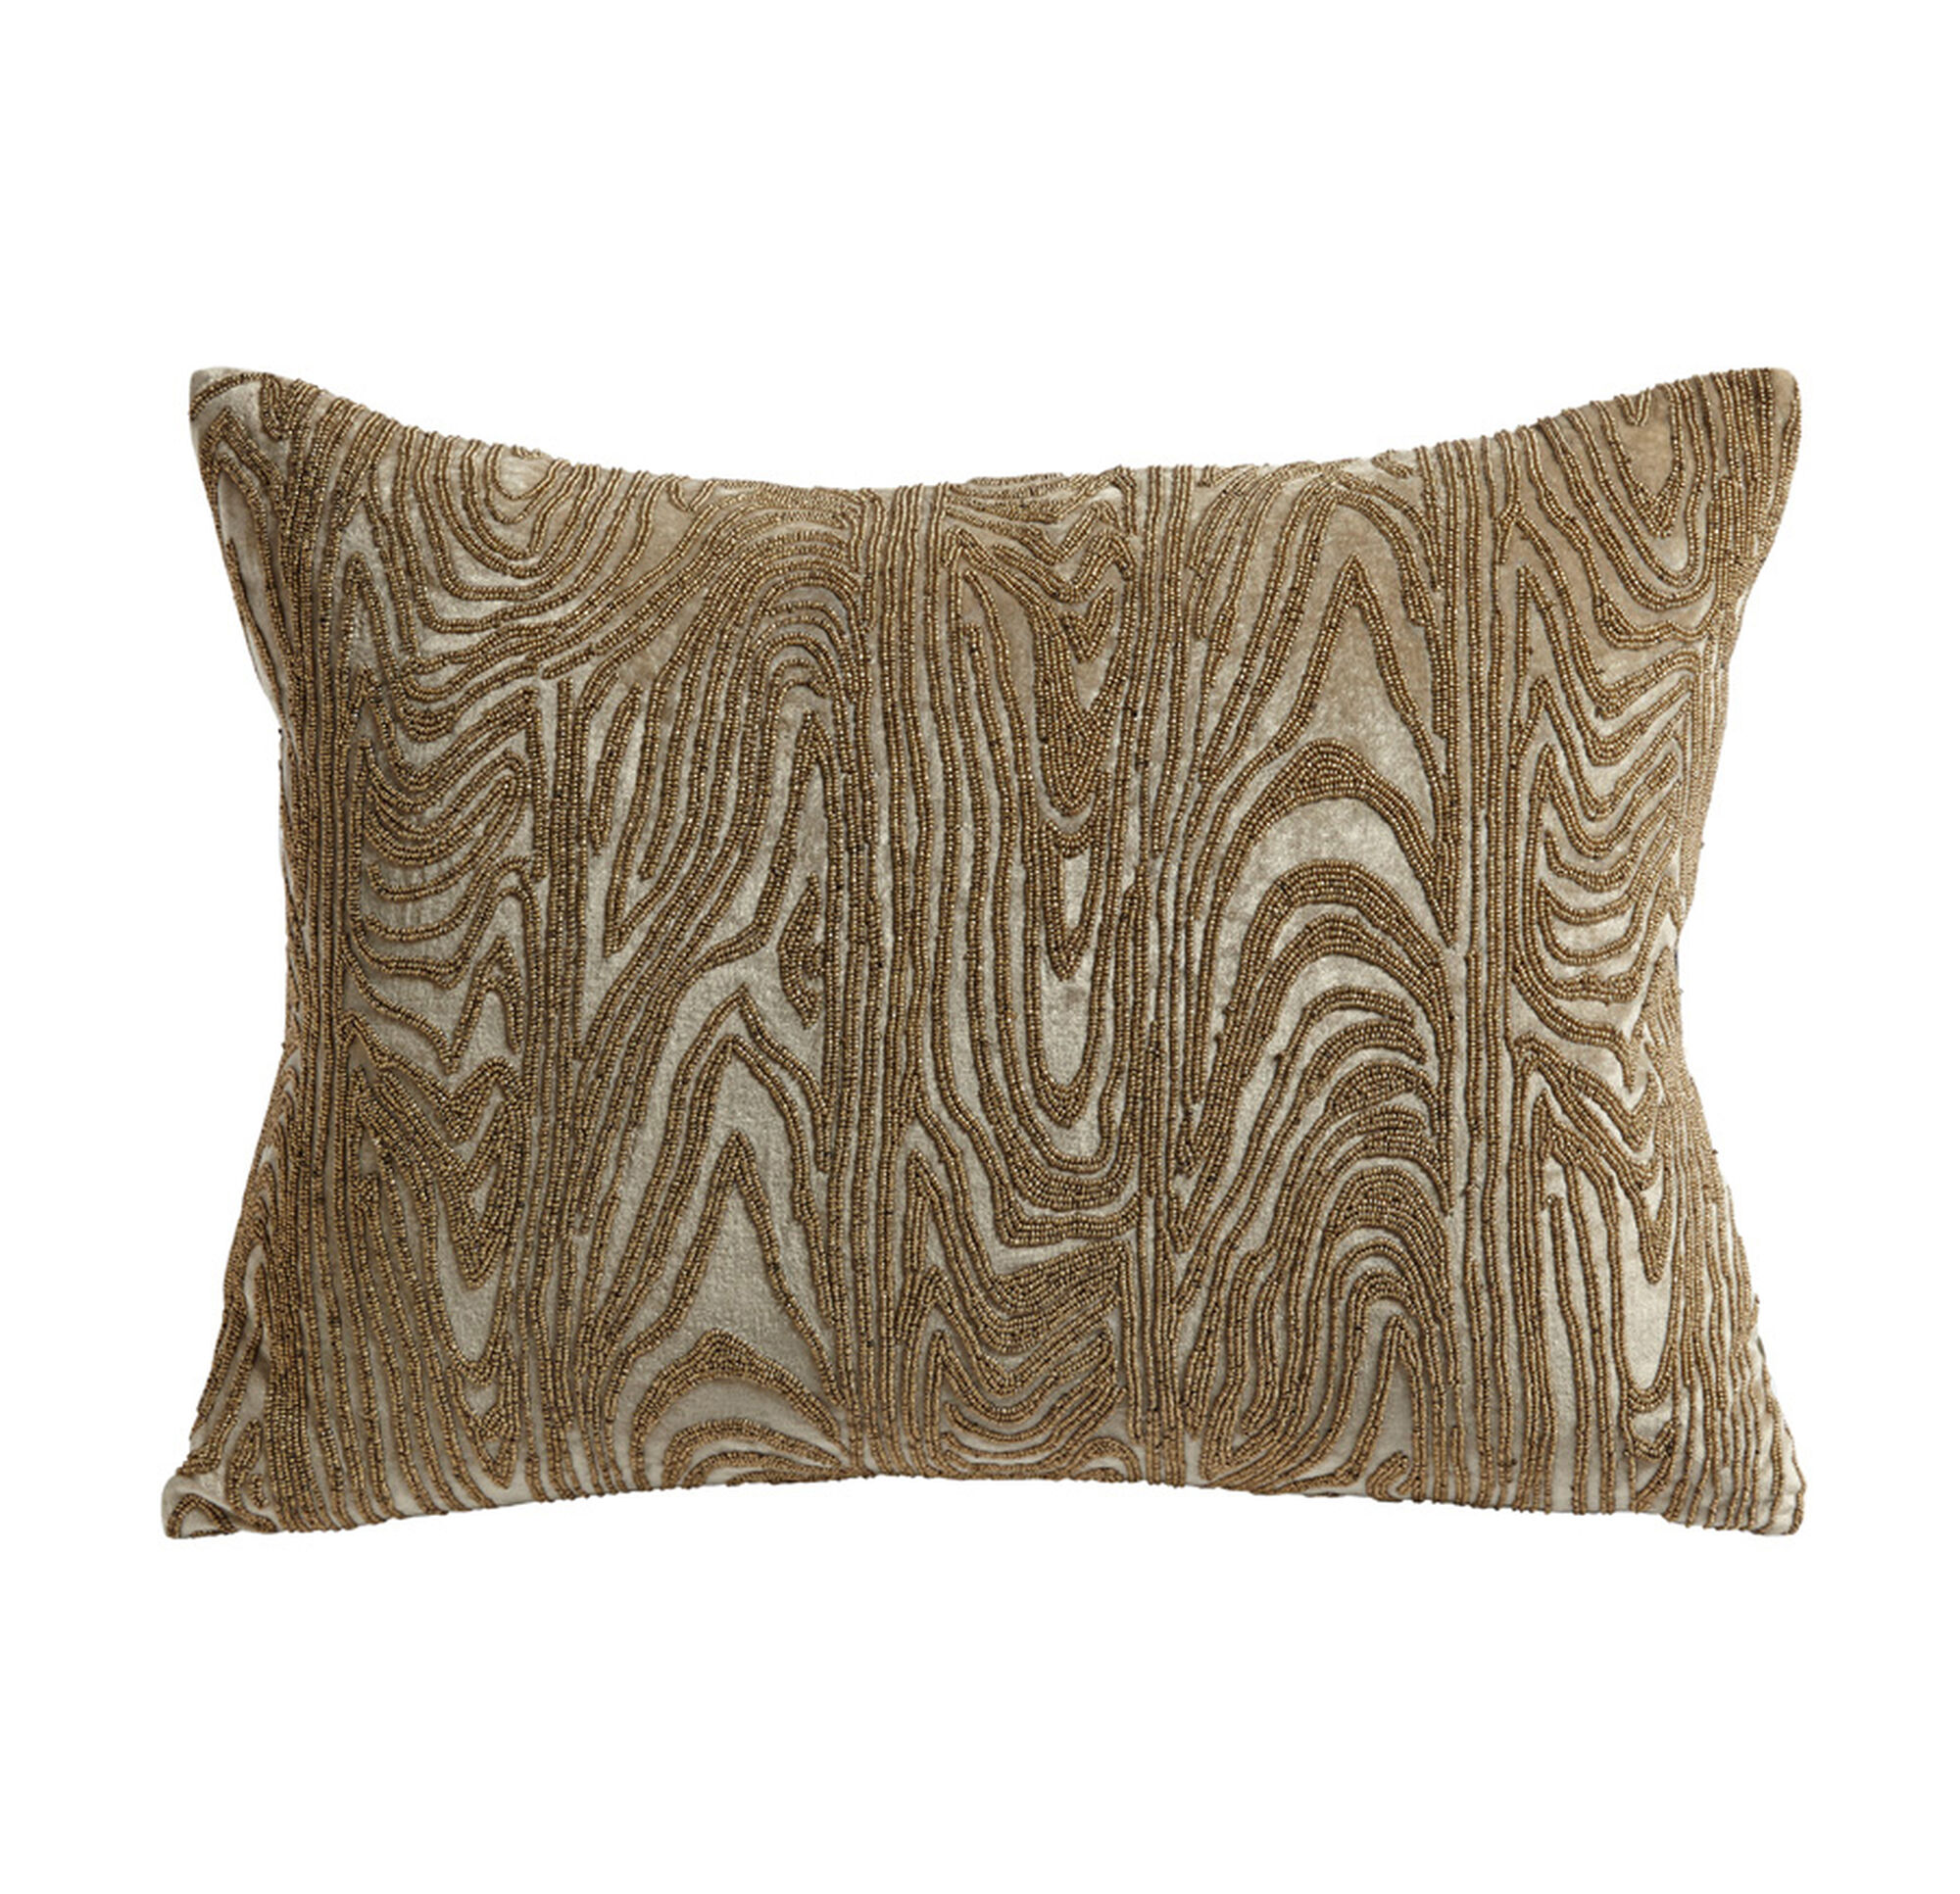 Gold Beaded Faux Bois Throw Pillow